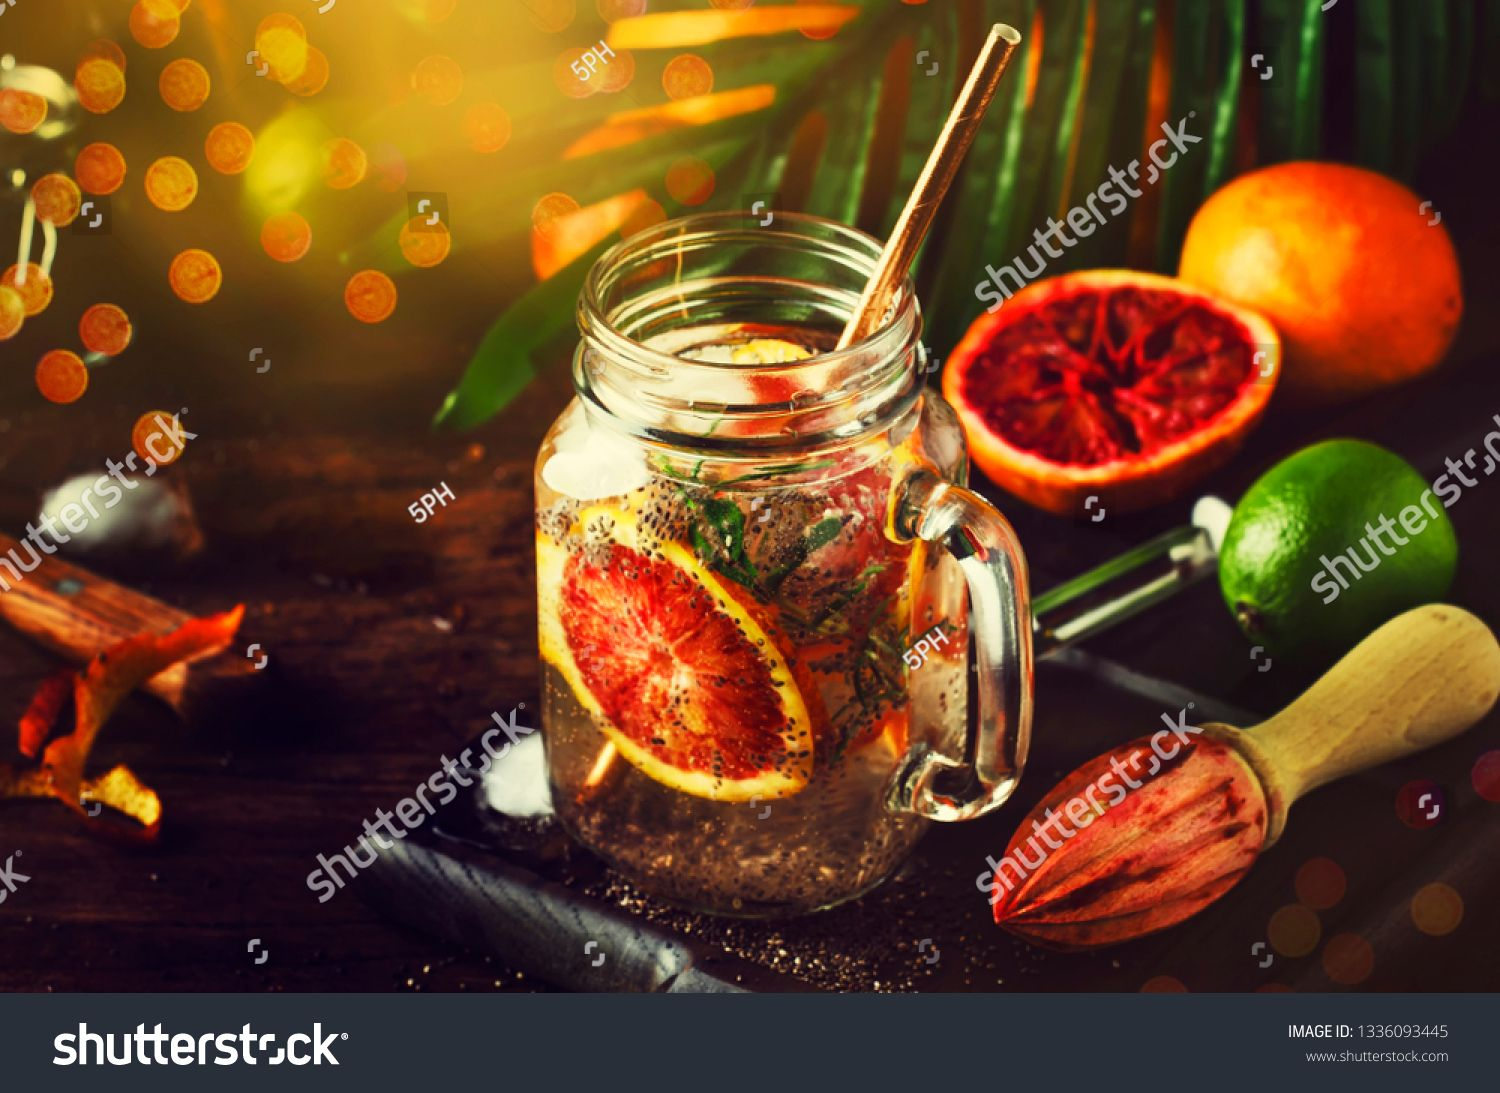 Summer Cold Detox Drink With Red Orange Rosemary Citrus Fruit